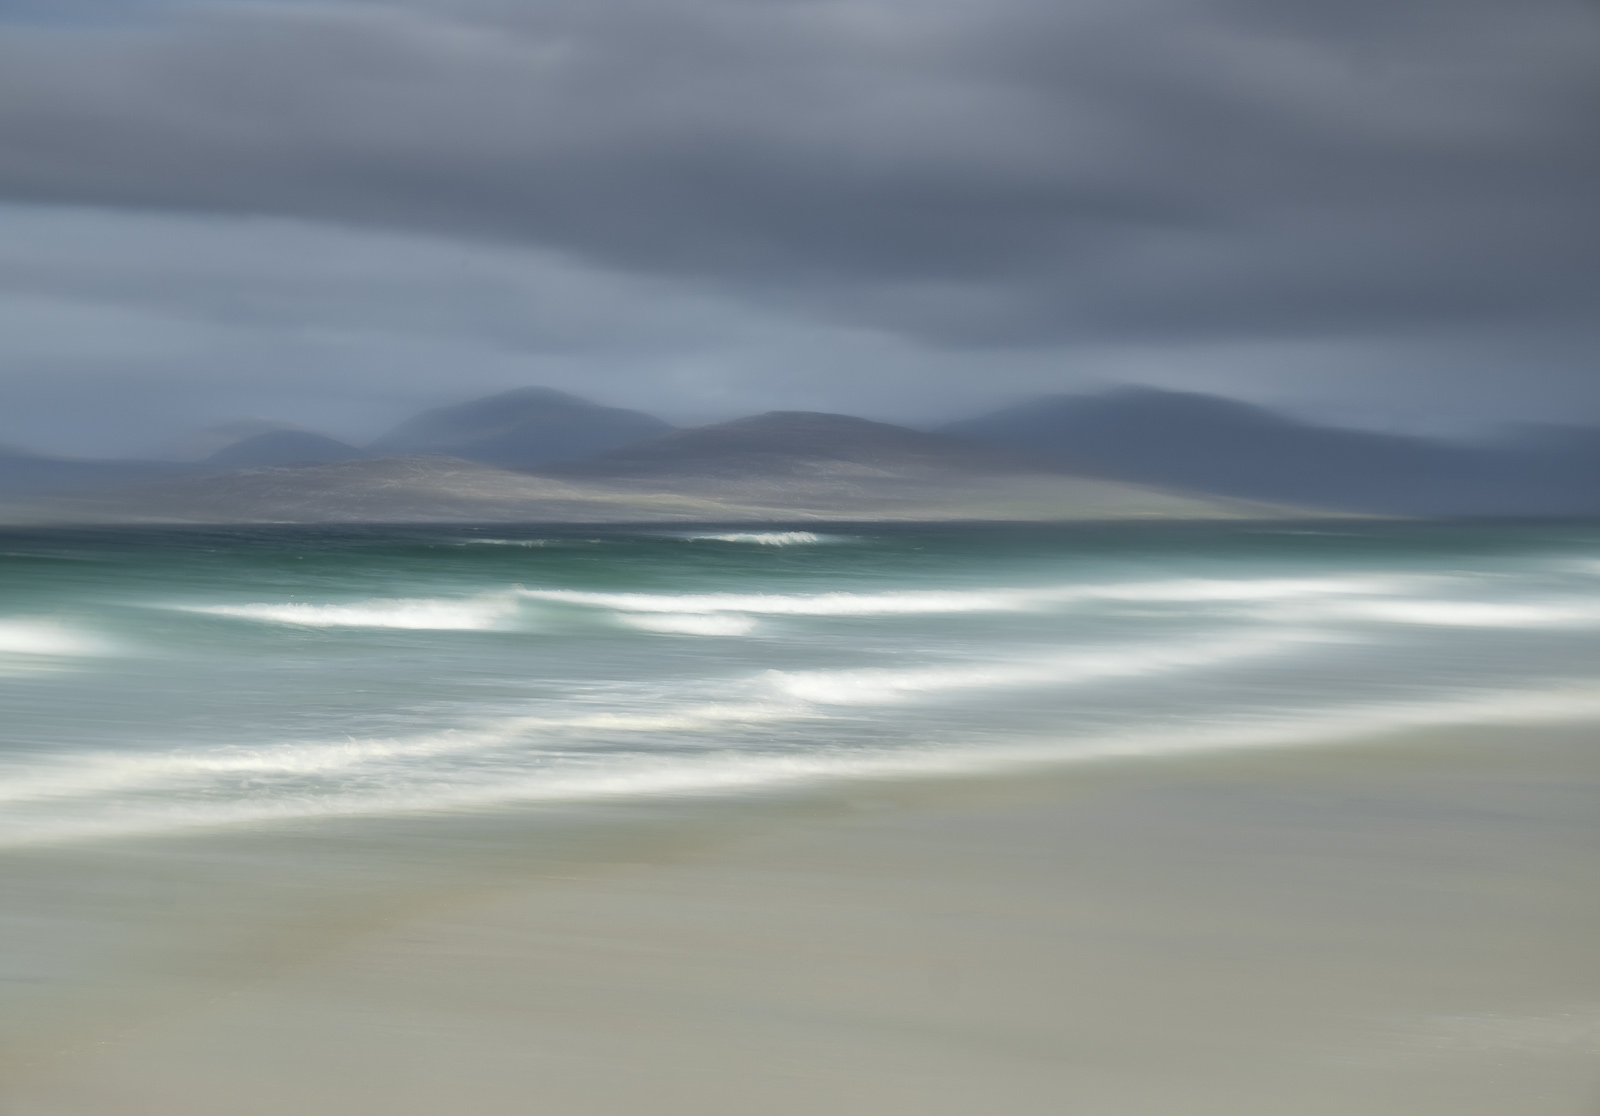 With the Harris peaks set below a moody grey sky and sunlit breakers crashing in on it's west coast beach I thought this would...